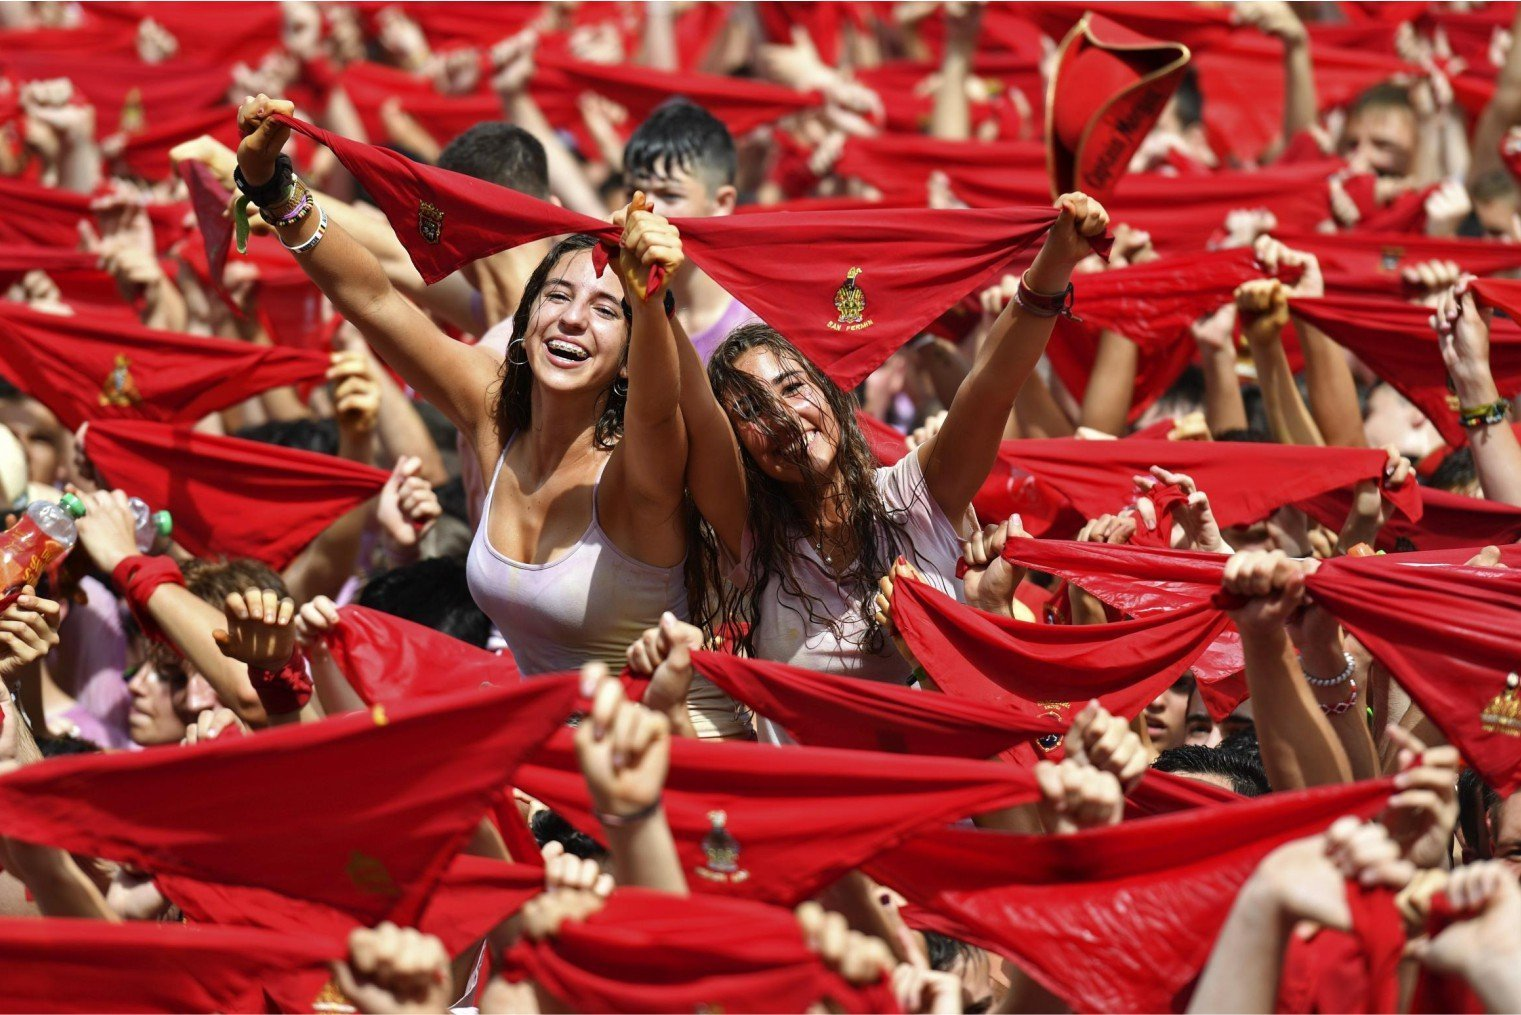 San Fermín Festival, Running of the Bulls, Pamplona. Сан-Фермин Фестиваль